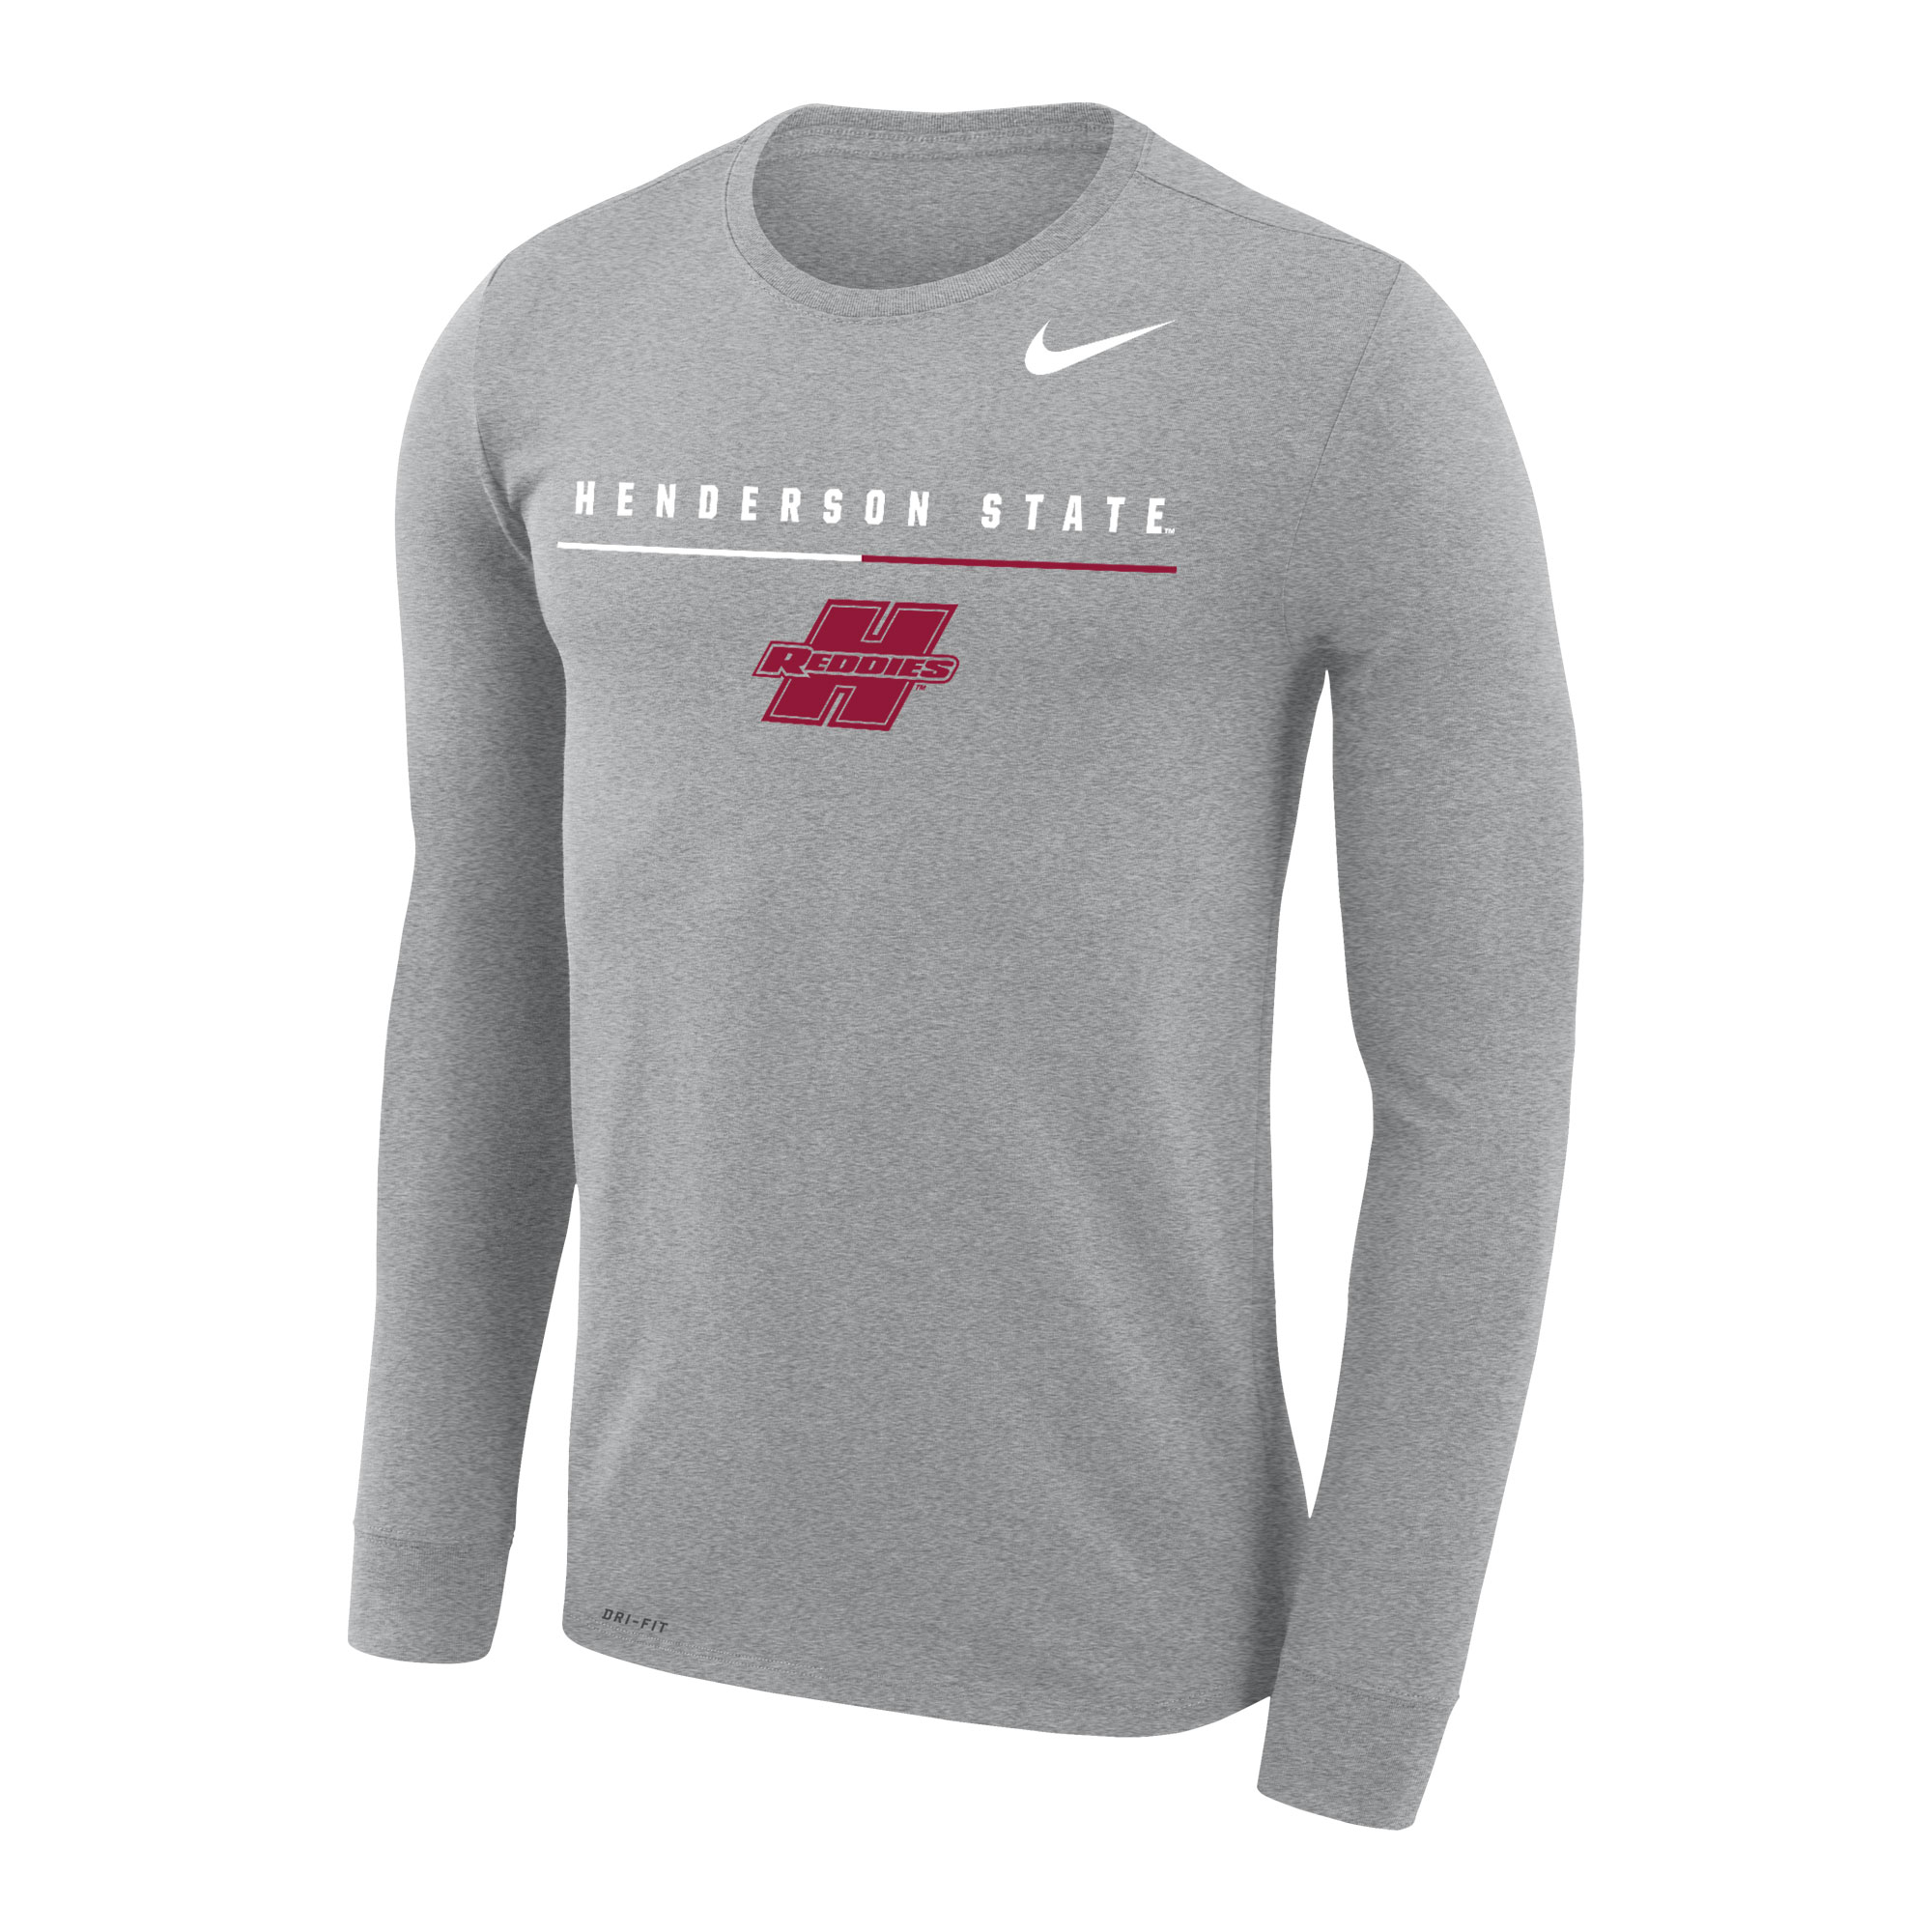 Henderson State Reddies Men's Legend Long Sleeve Tee